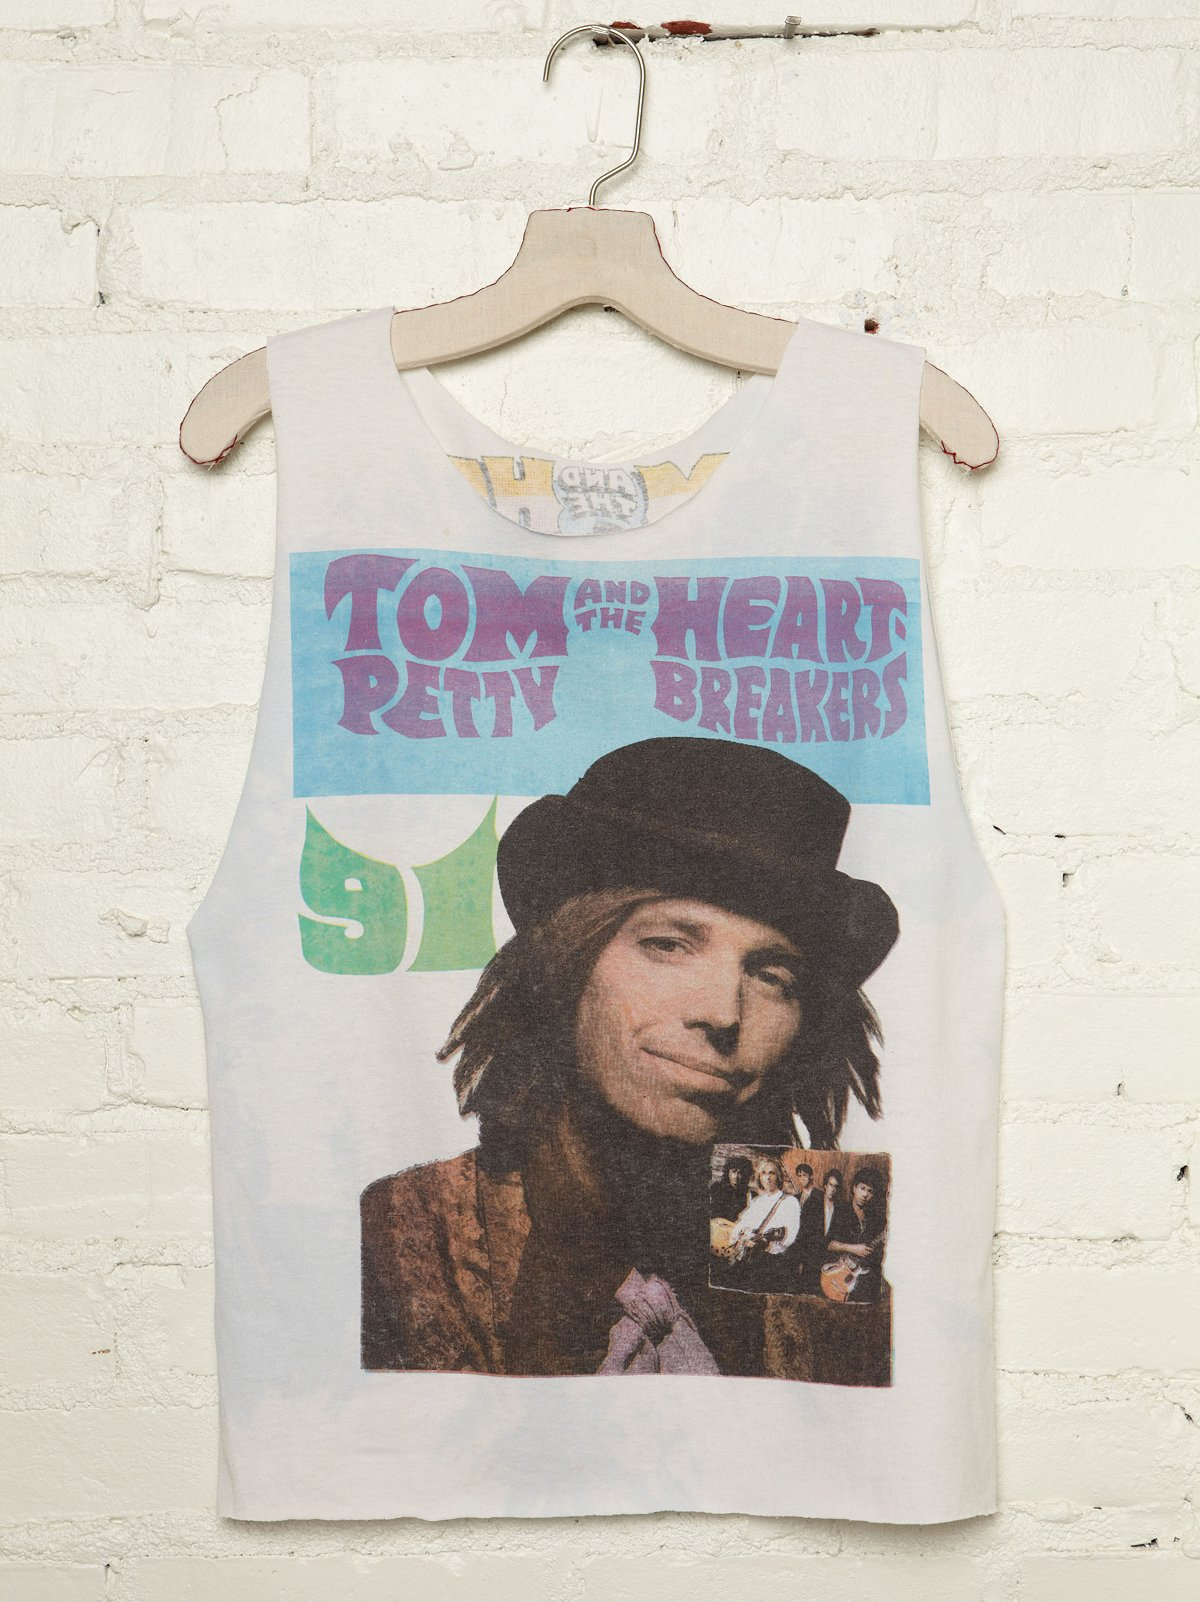 Vintage Tom Petty and the Heart-Breakers 1991 Tank